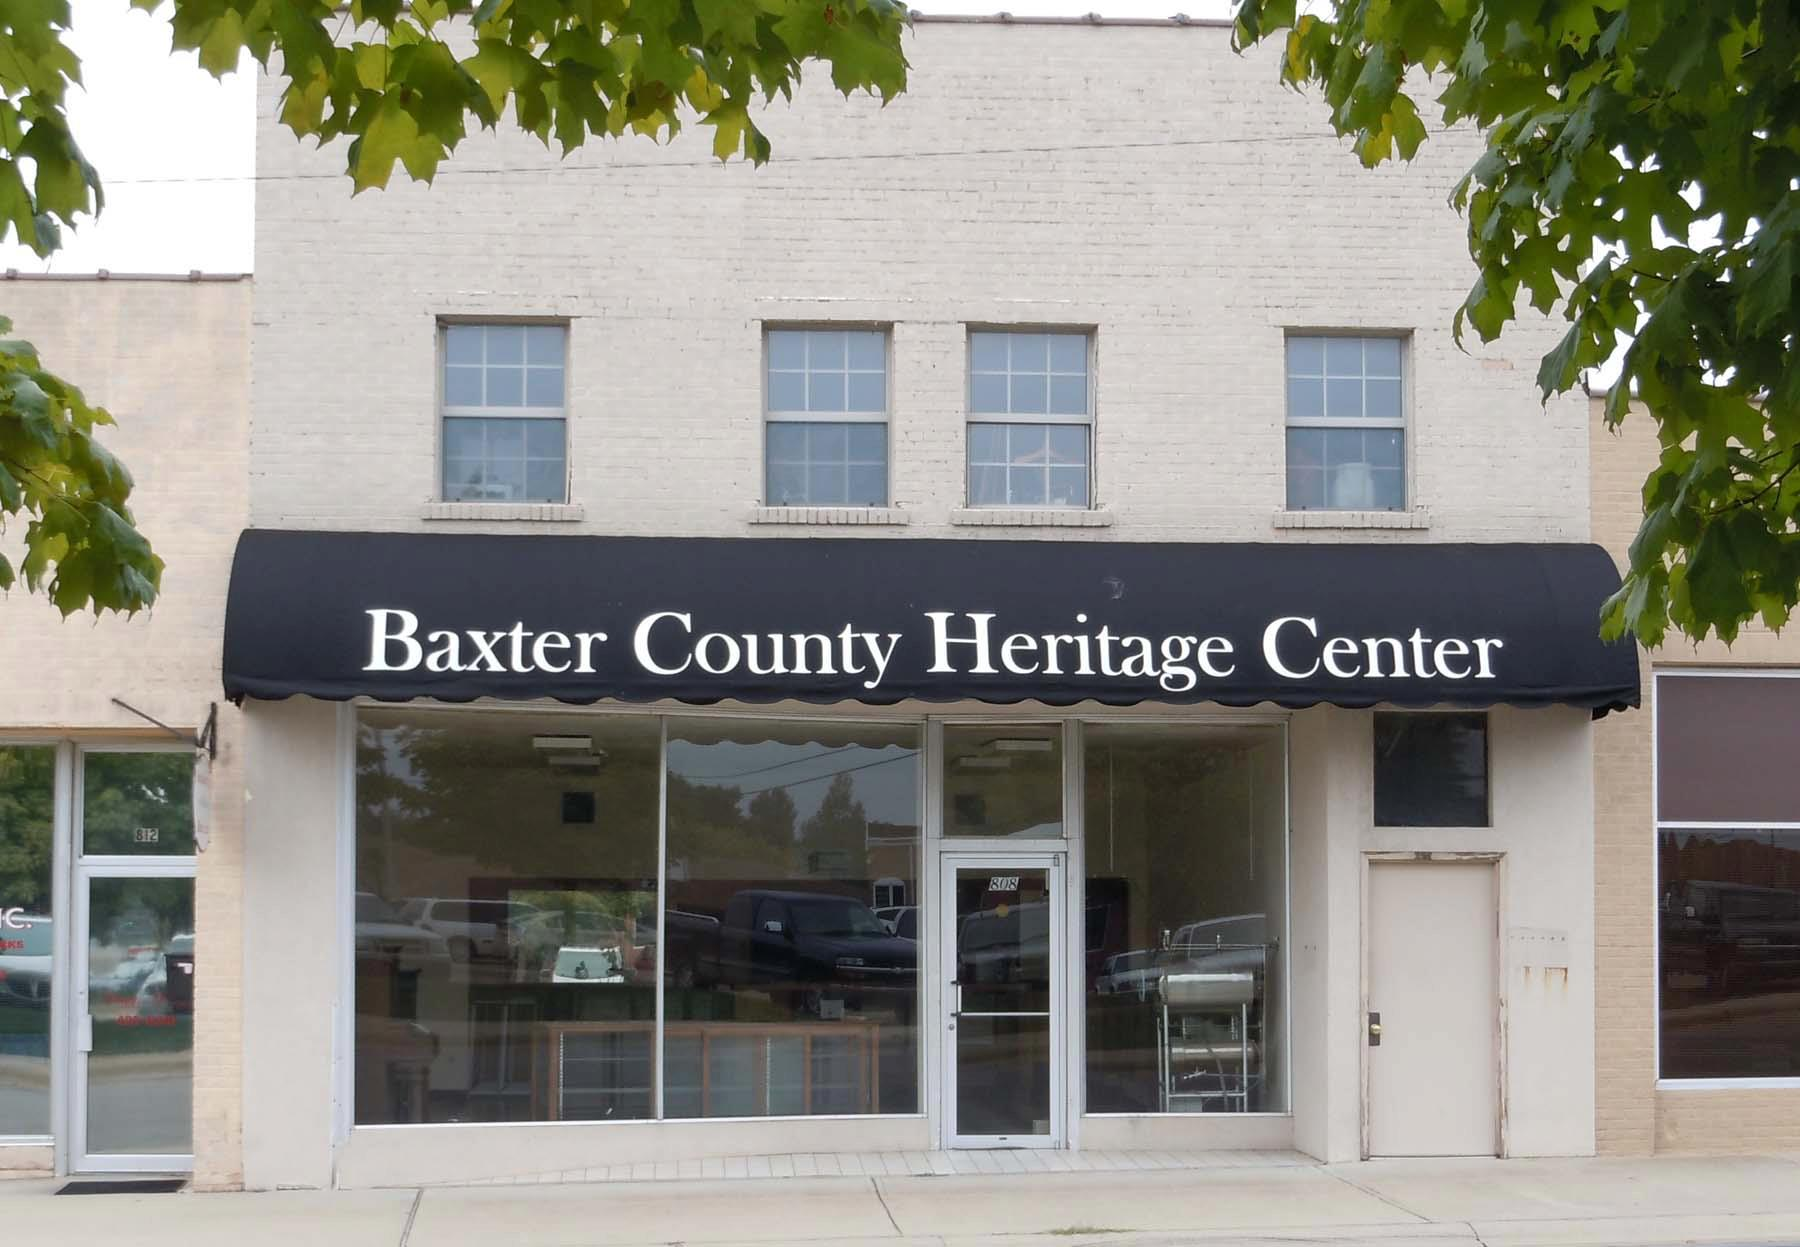 The Heritage Center is the headquarters for the Baxter County Historical and Genealogical Society. It contains historical material related to the county's history.